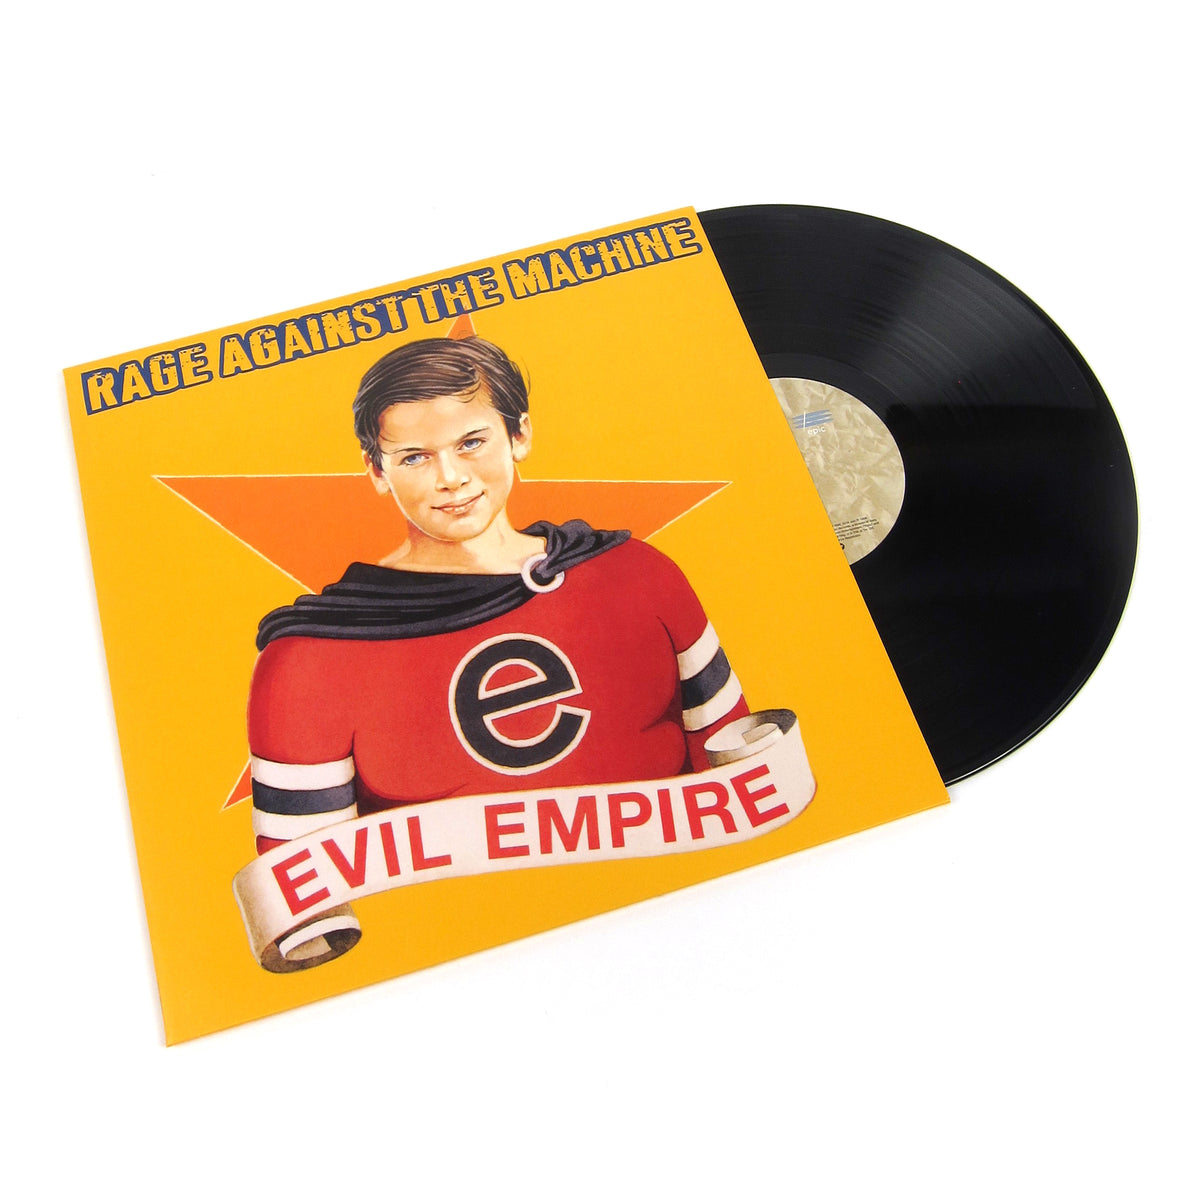 Rage Against The Machine: Evil Empire (180g) Vinyl LP